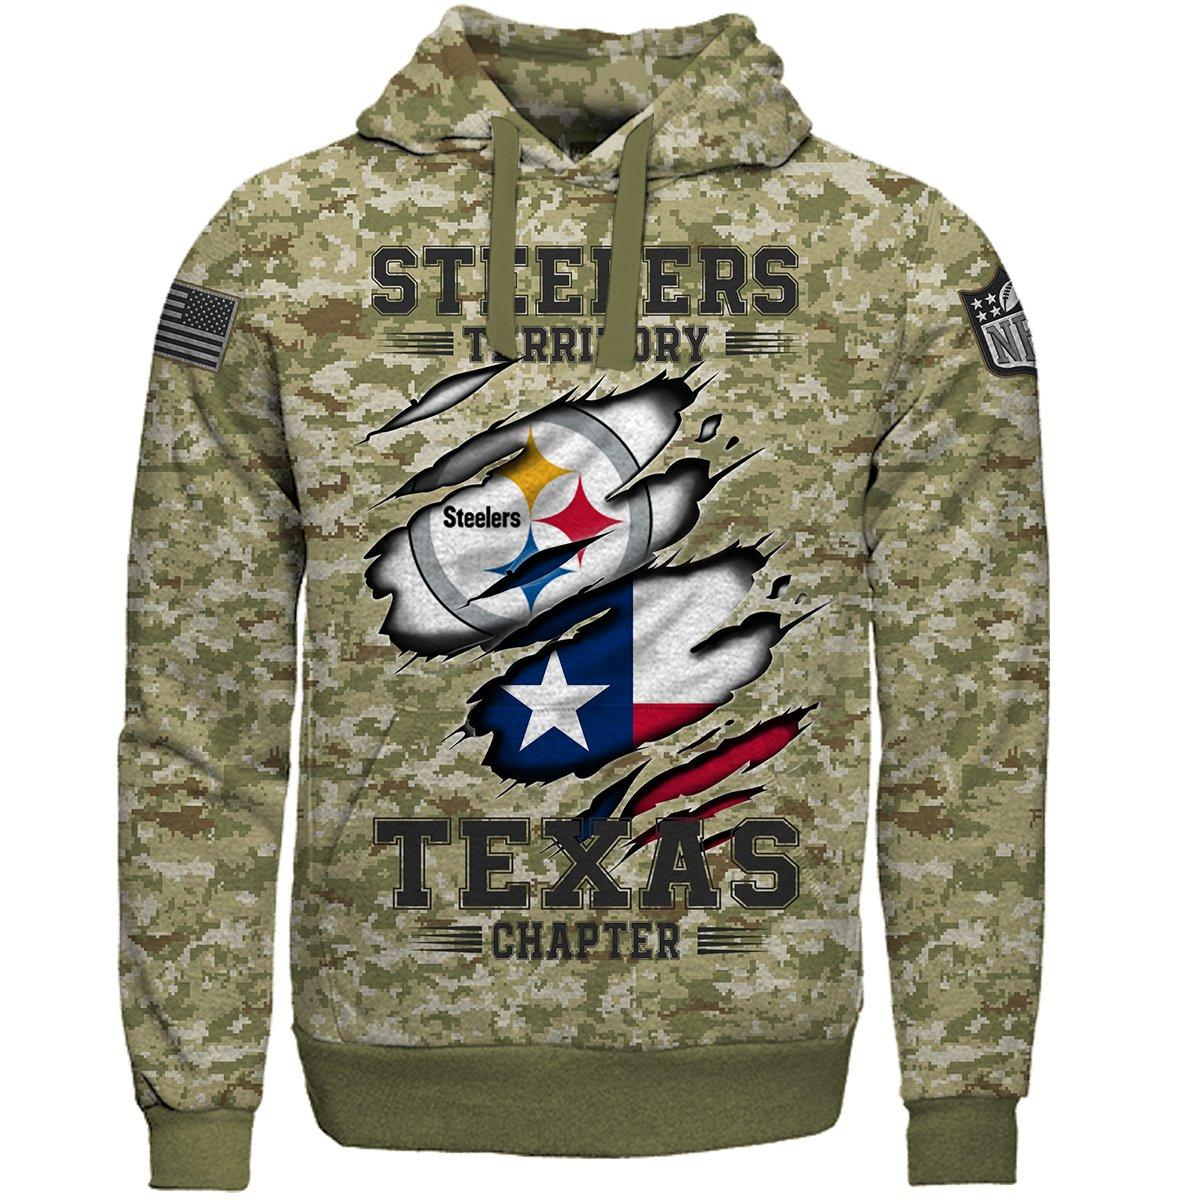 buy online 69c5c 84c07 steelers Territory Texas Chapter - Camo US Navy 3D Print – Free Shipping